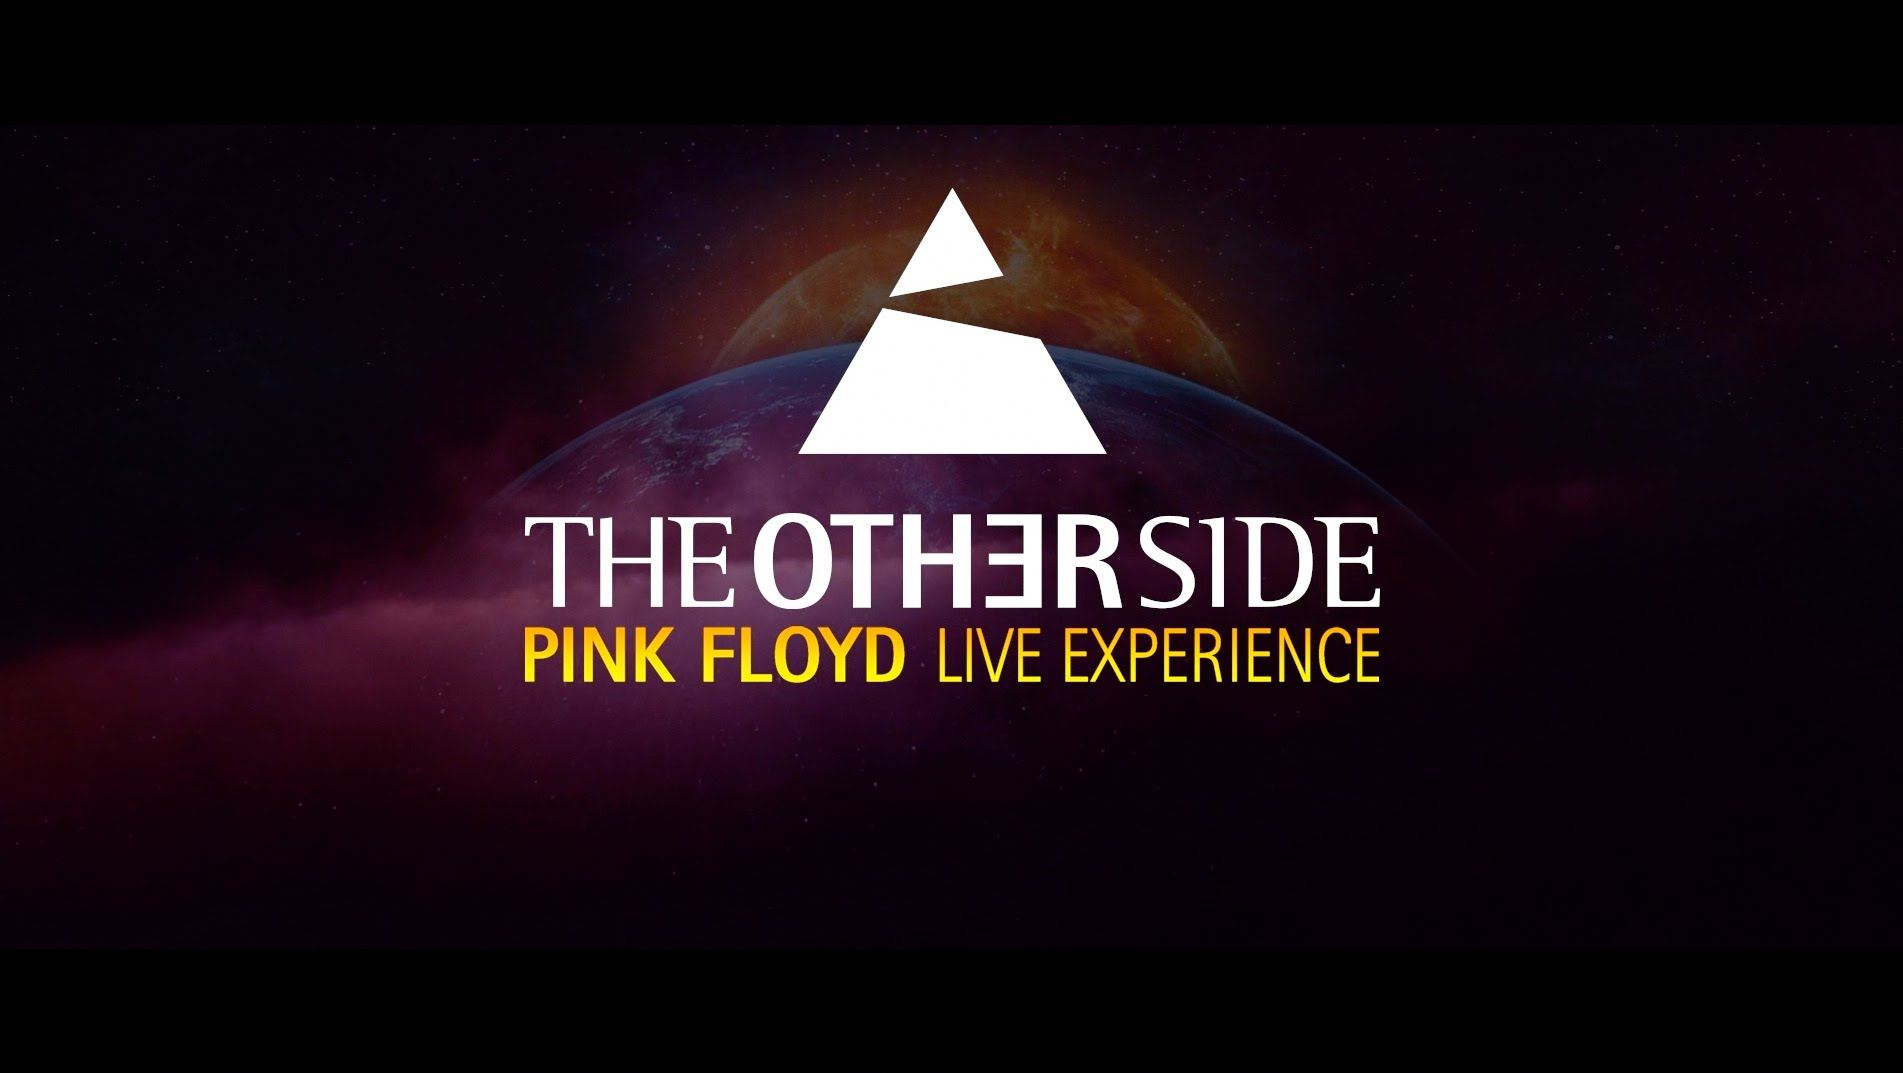 The Other Side sigue rindiendo tributo a Pink Floyd por toda España